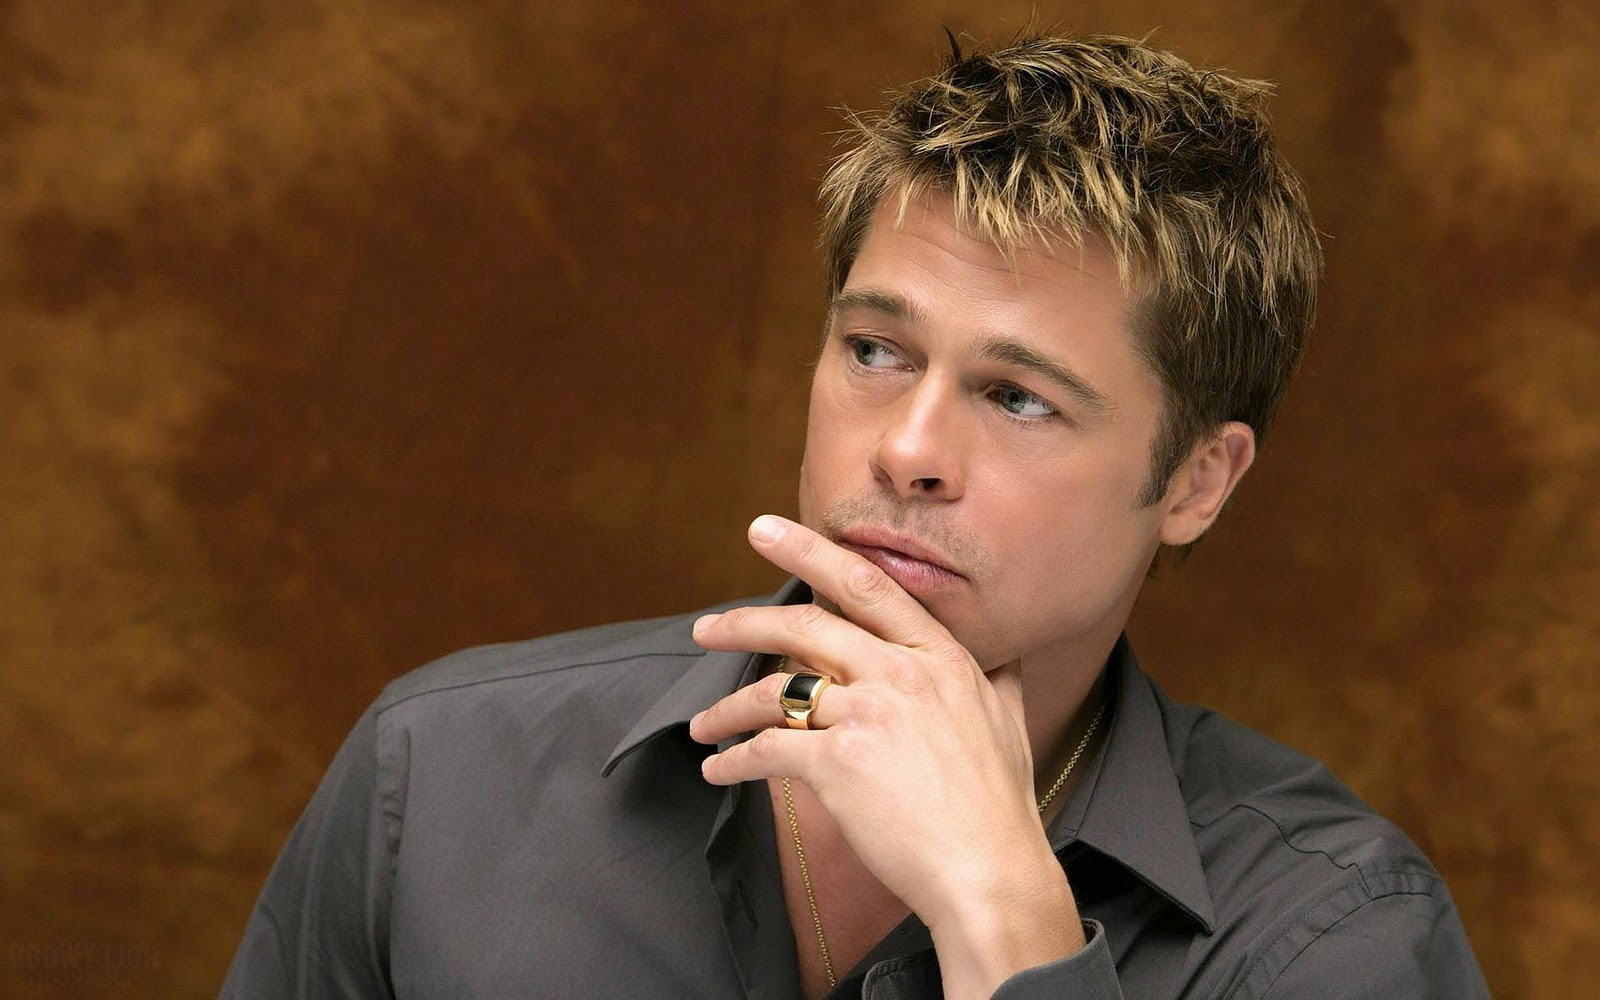 http://2.bp.blogspot.com/-cVkOL4ivnhY/Ttb3Lign8jI/AAAAAAAAANI/EwTEjBc66_A/s1600/Brad-Pitt-pictures-desktop-Wallpapers-HD-photo-images-1.jpg